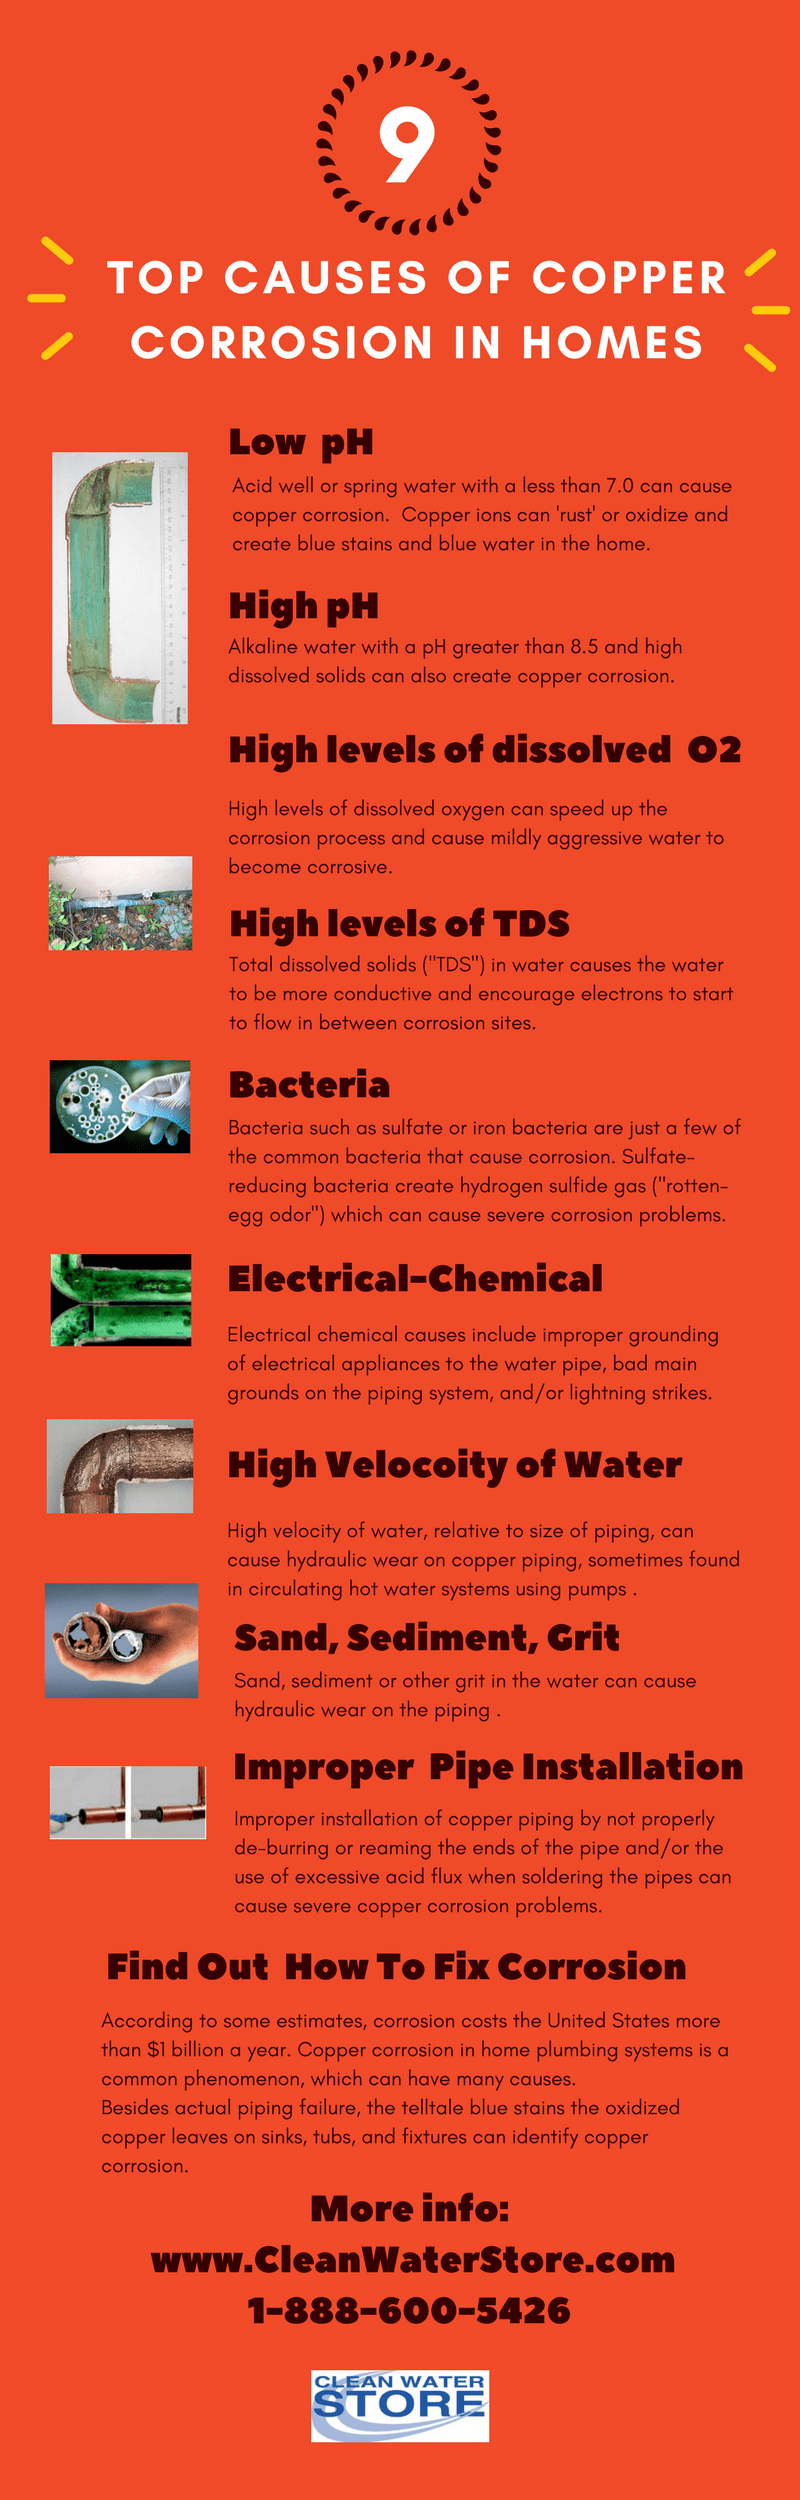 Top 9 Causes of Copper Corrosion in Homes Infographic